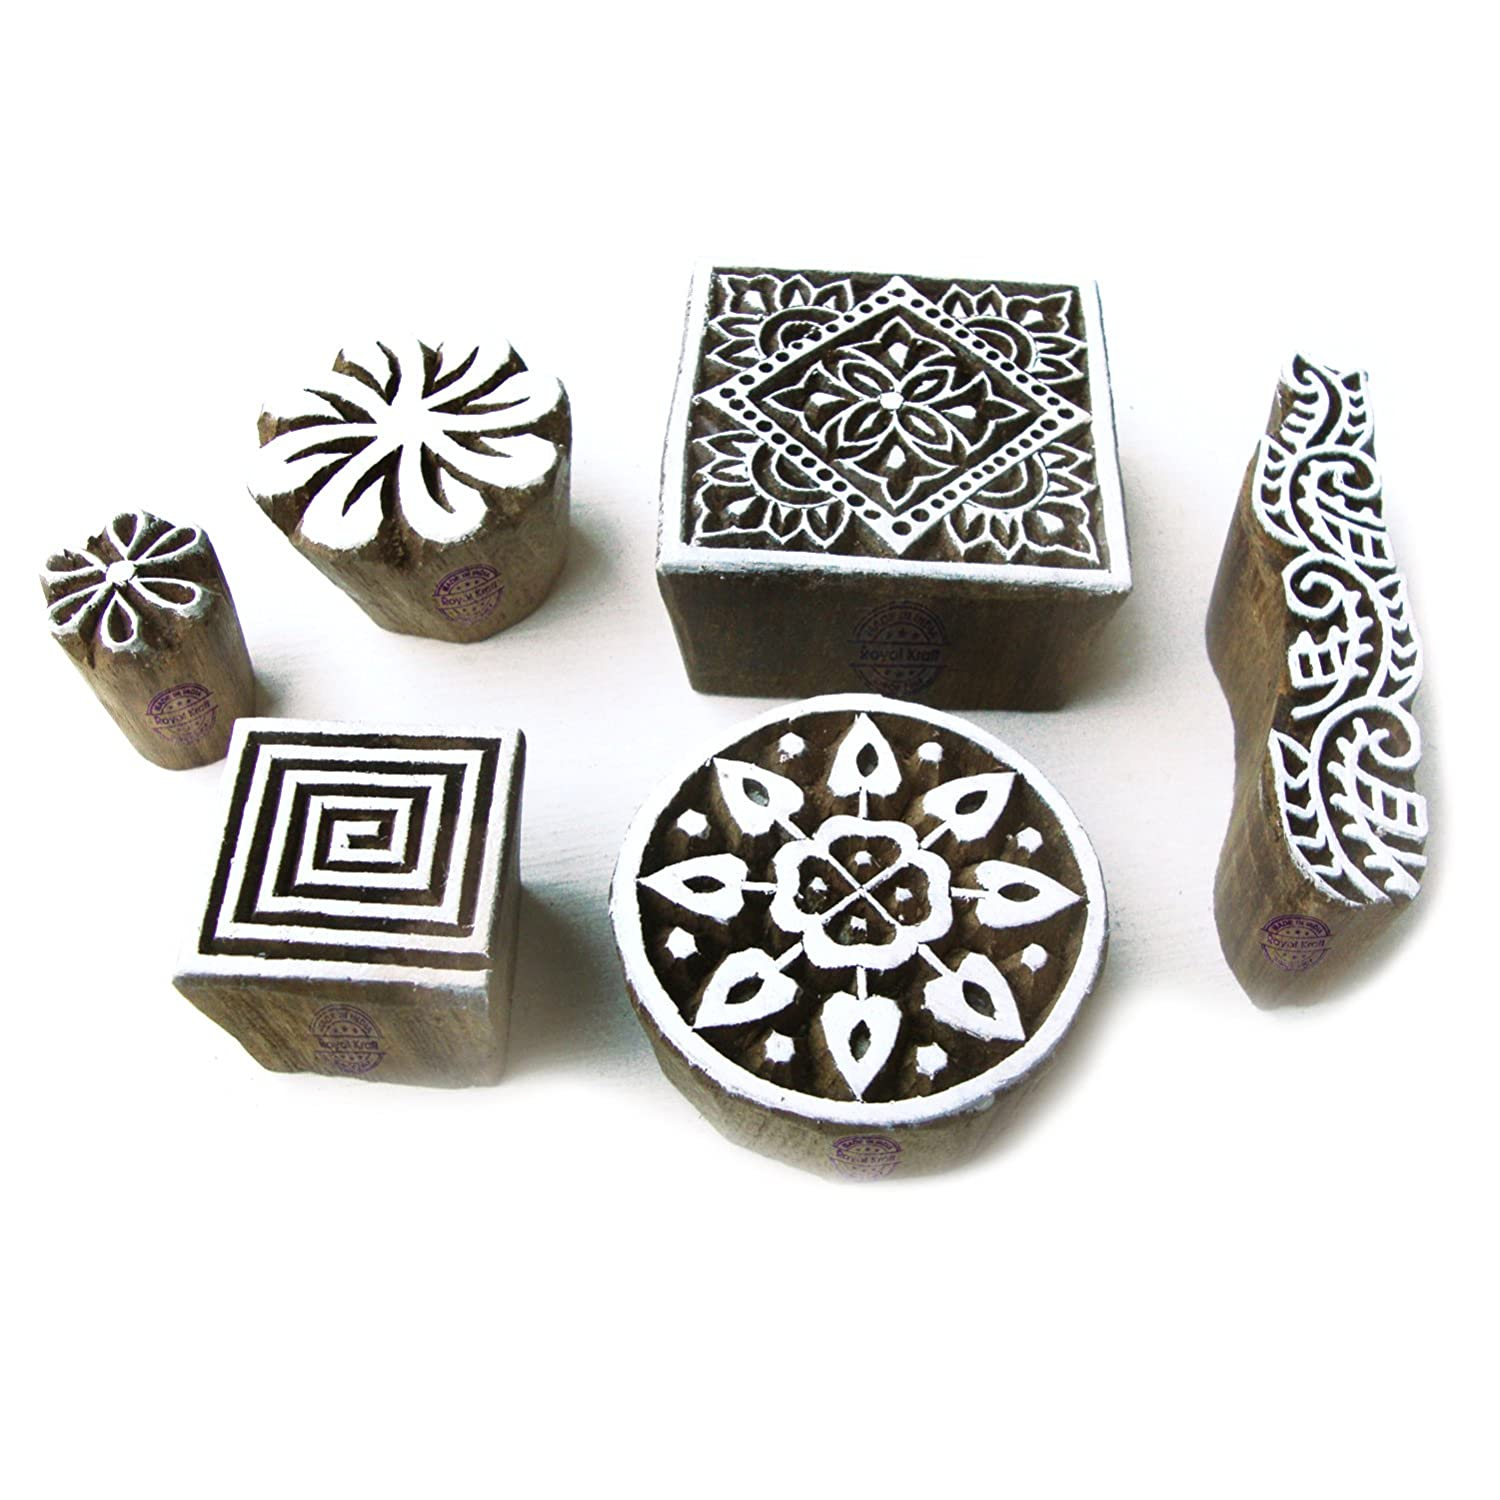 Handmade Square and Round Designs Wood Blocks for Printing (Set of 6)